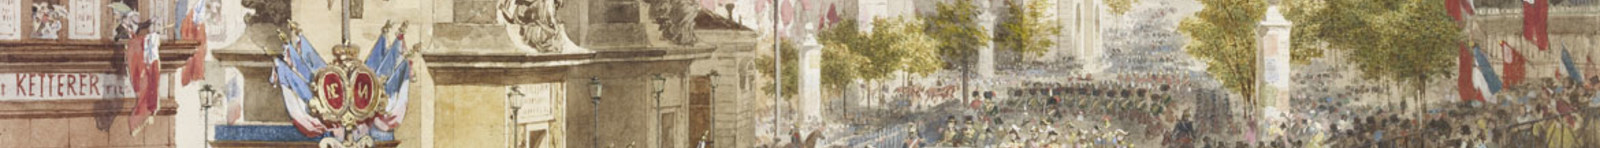 Detail showing the arrival of Queen Victoria through the crowds in Paris